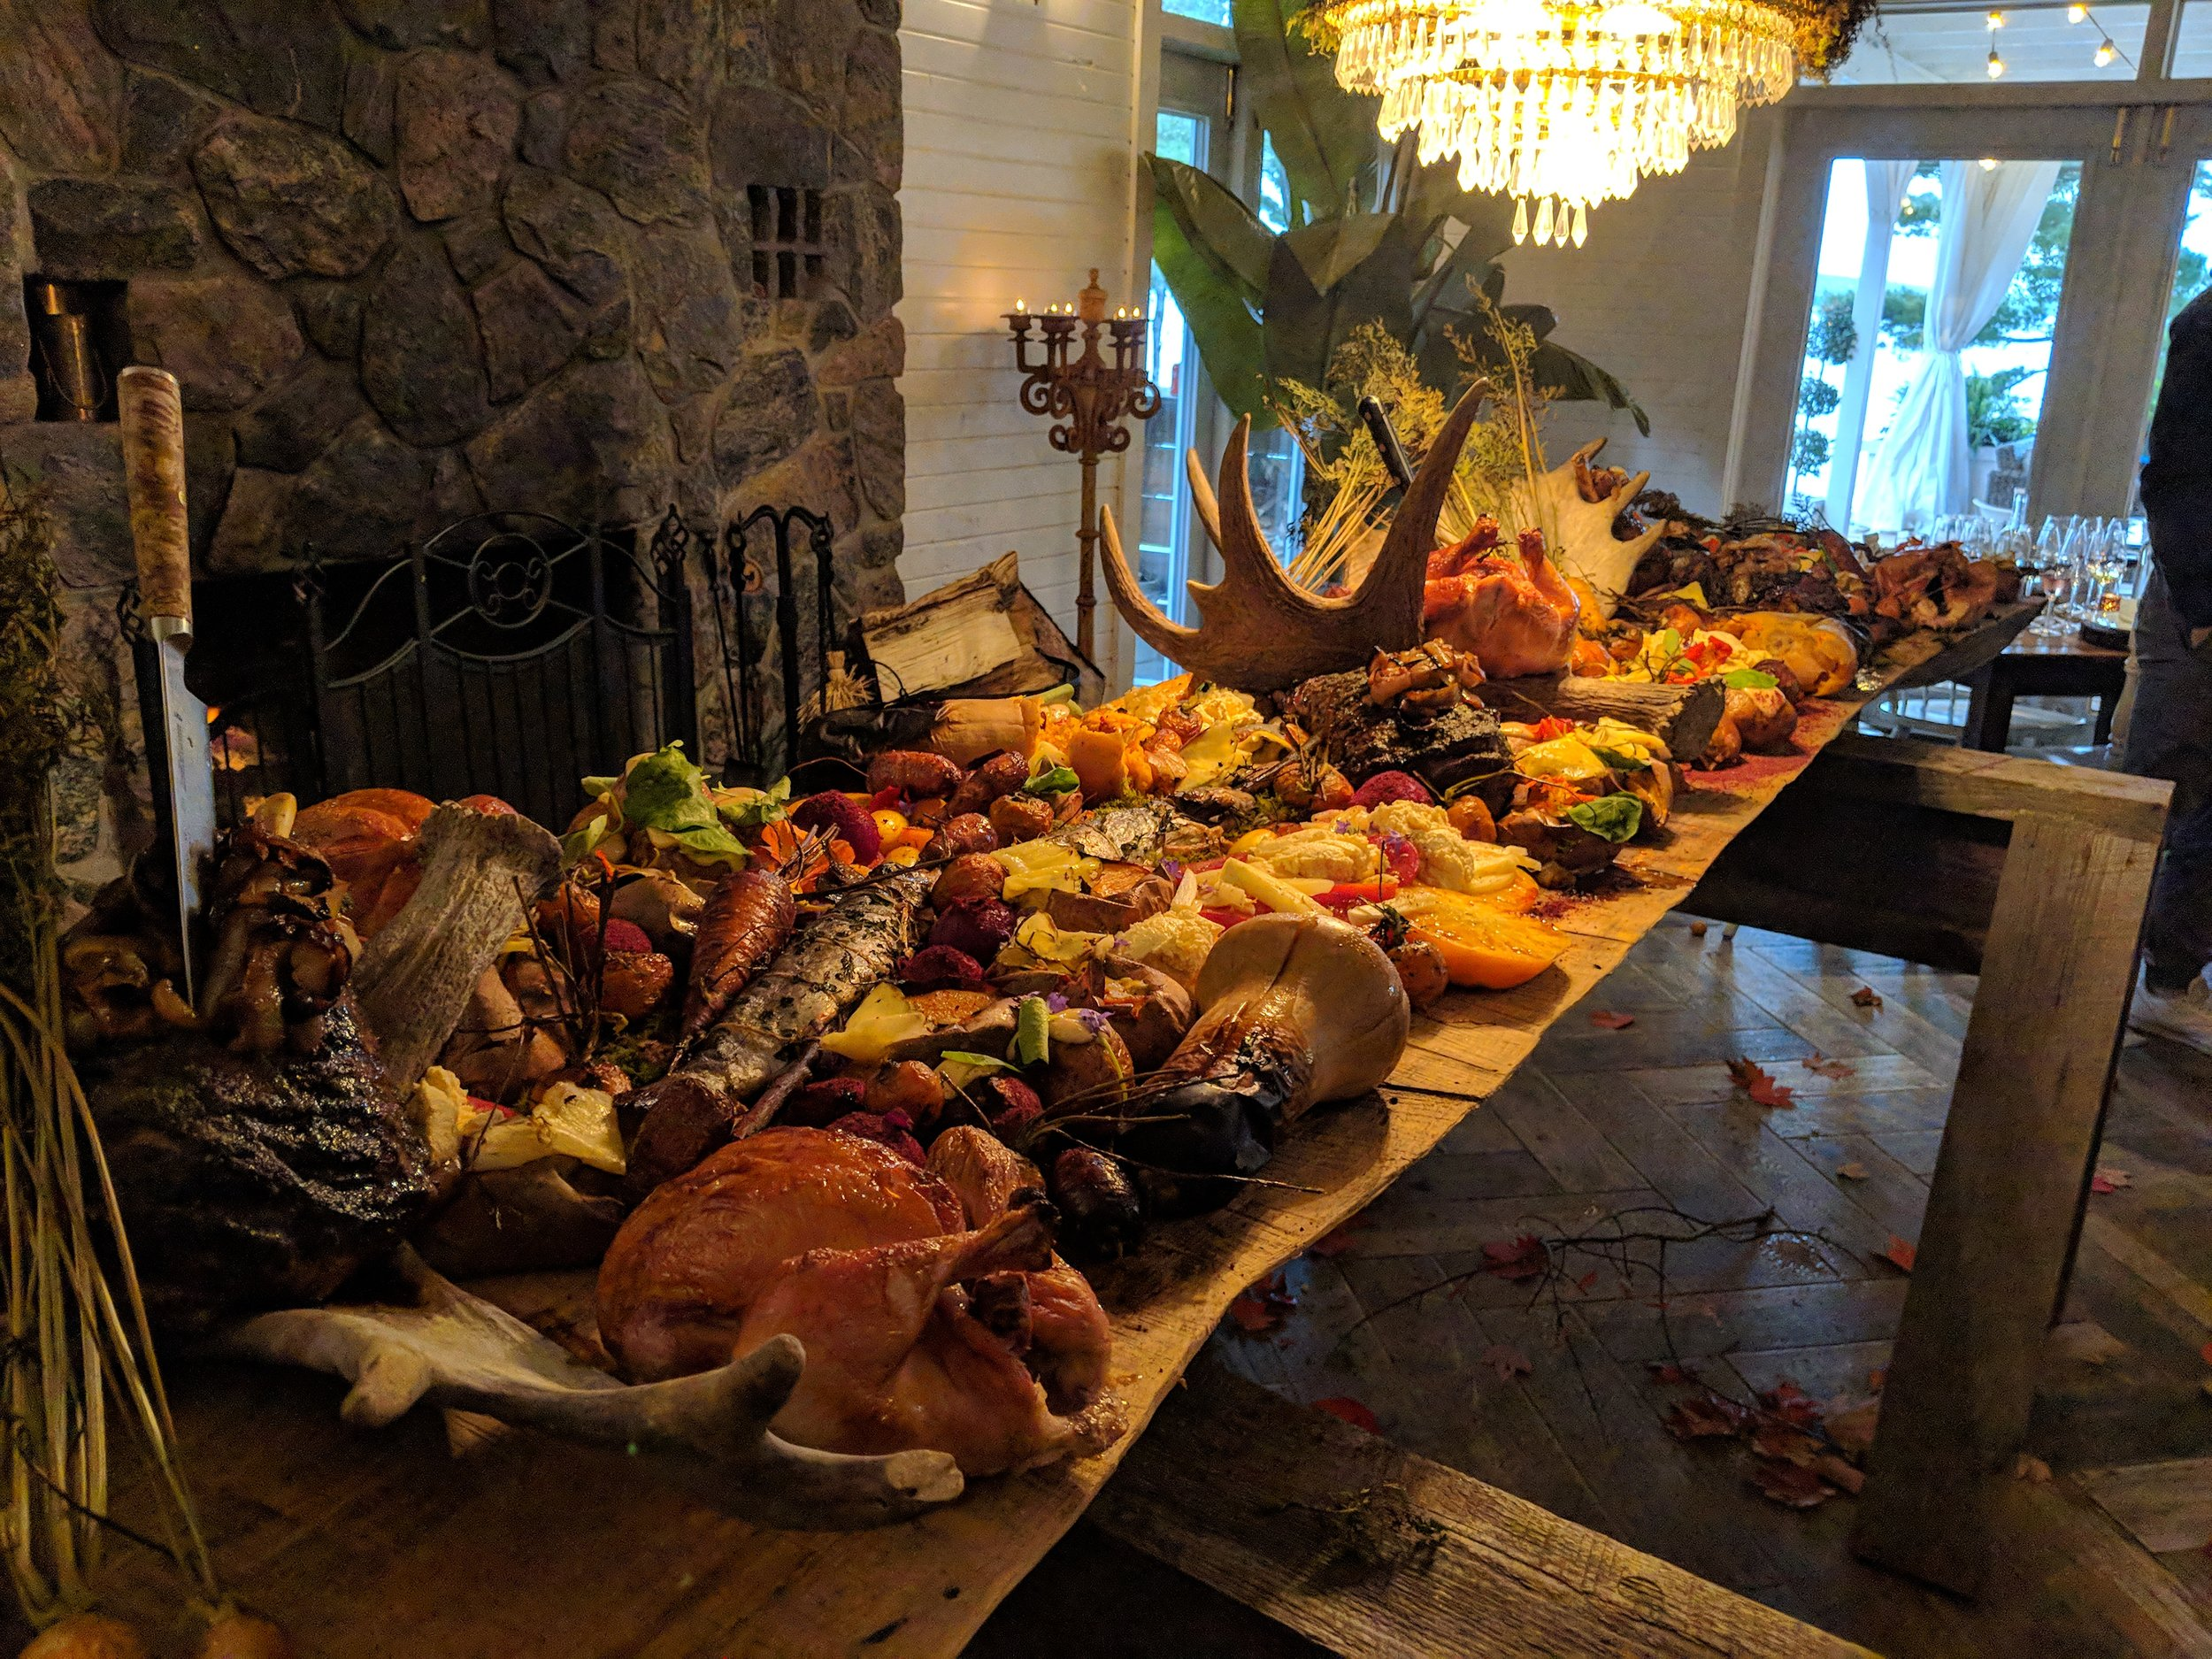 Massive Harvest Table Feast- Whole Chickens, Lamb Legs, Fish, Roasted Autumn Veggies and More